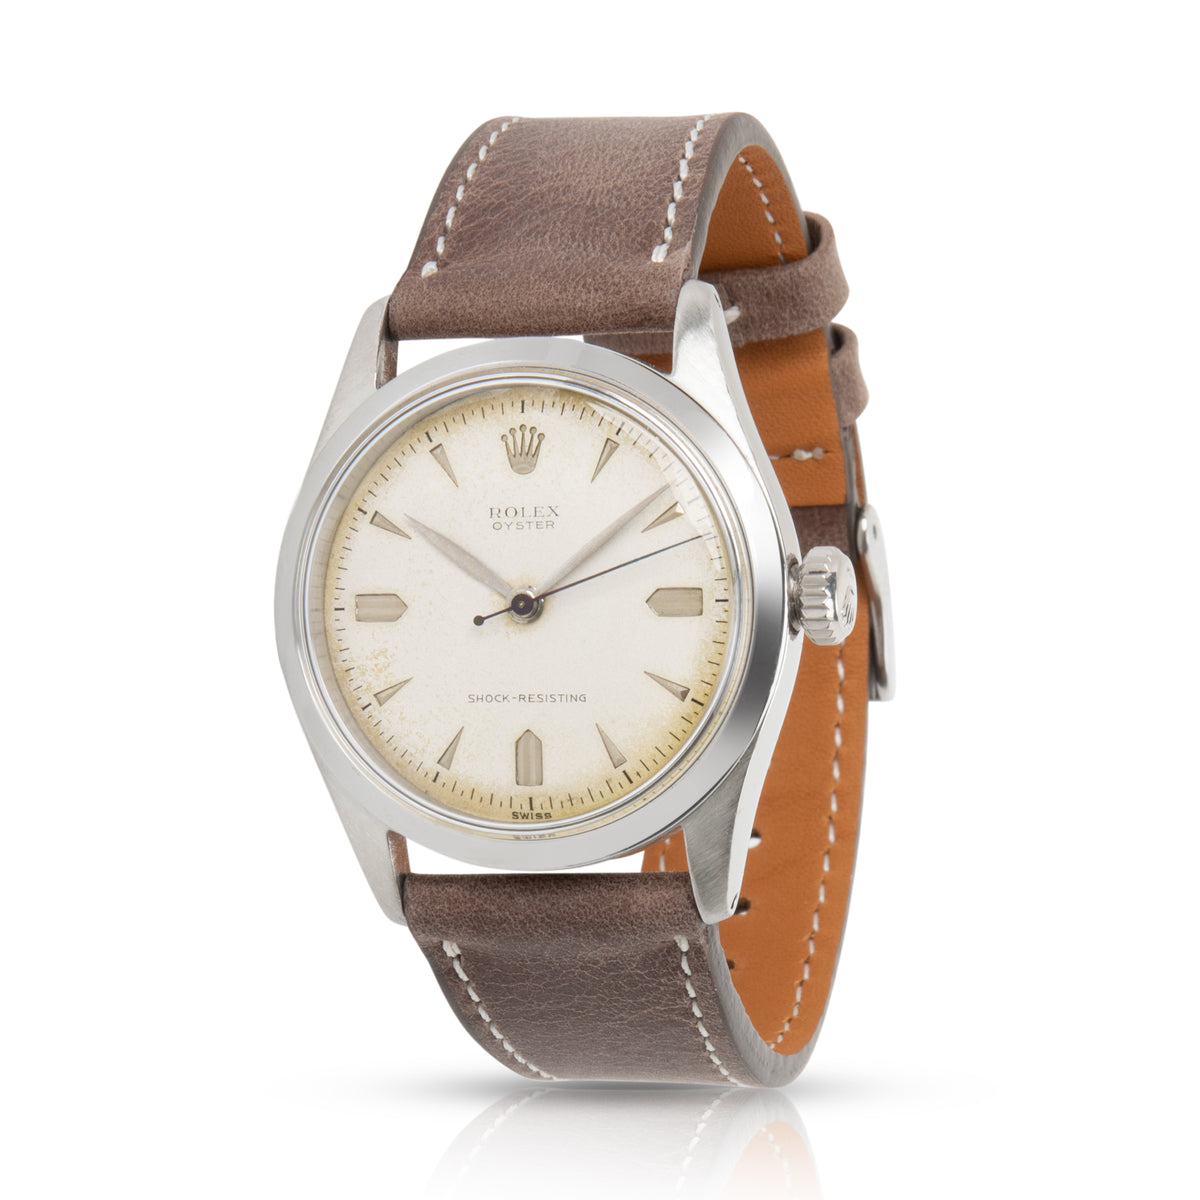 Rolex Oyster 6282 Men's Watch in  Stainless Steel